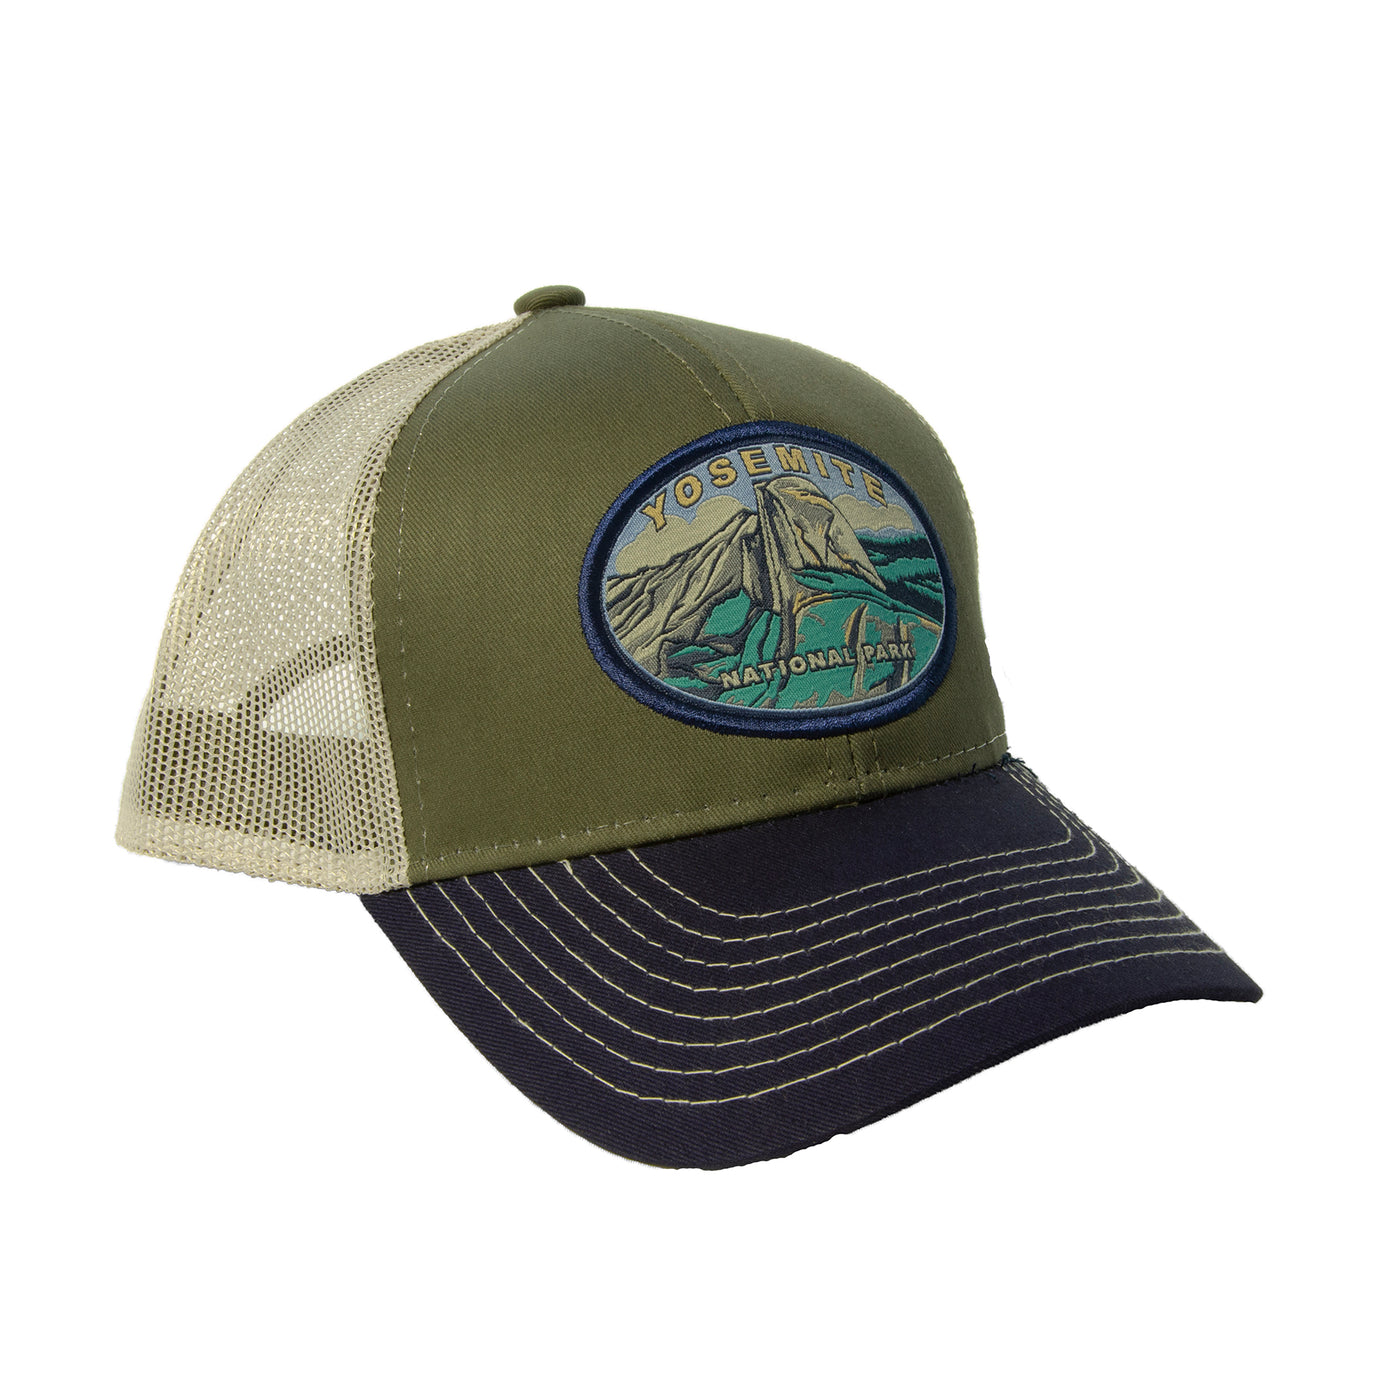 Yosemite National Park Patch Hat